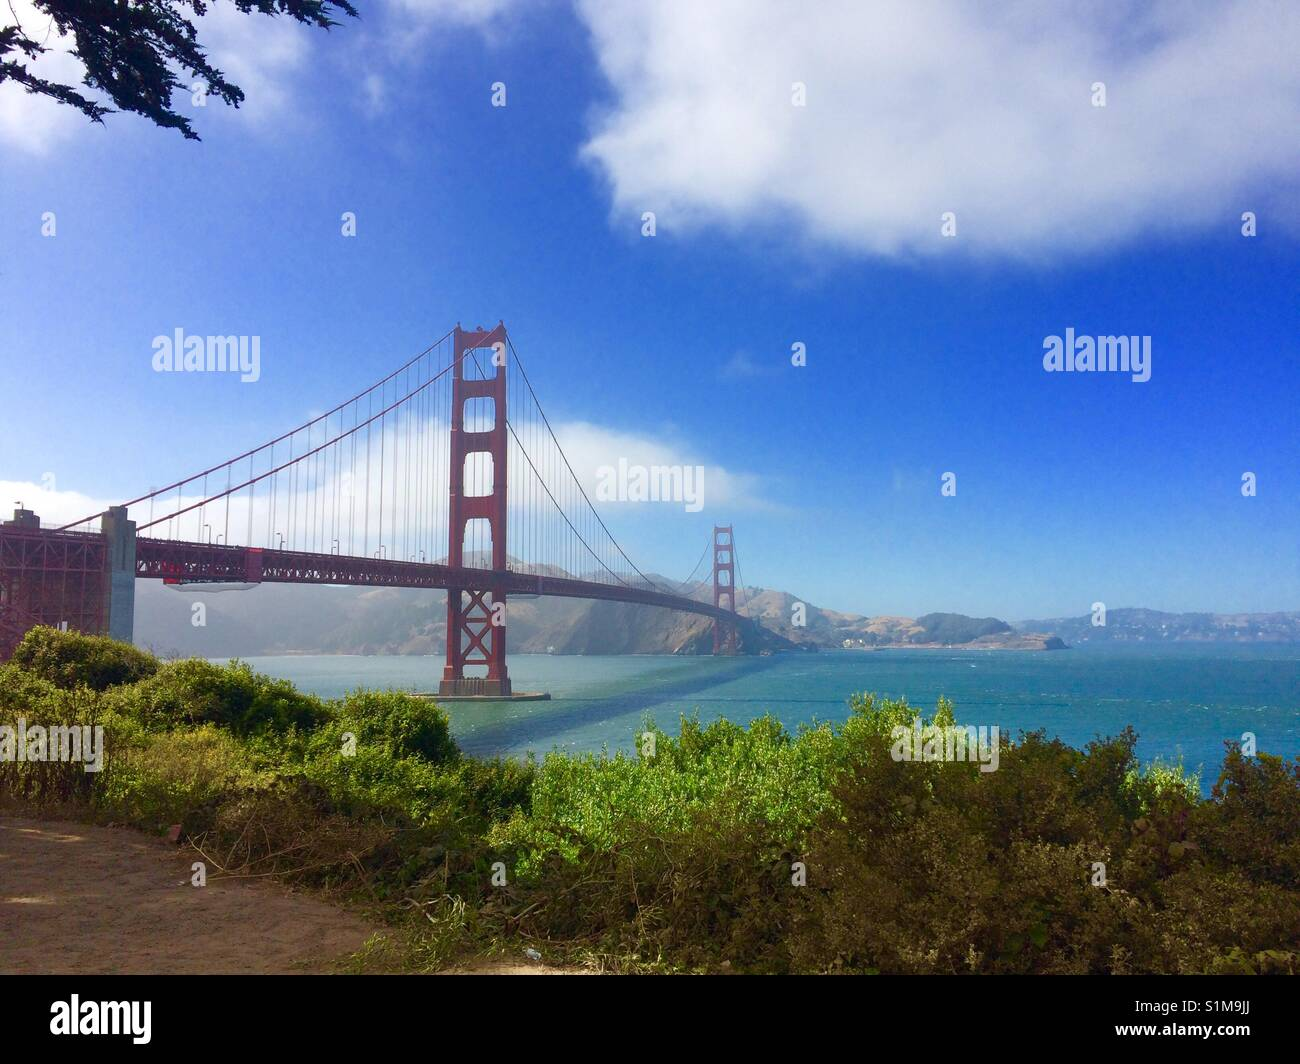 Golden Gate Bridge at midday. Taken from the south side. - Stock Image